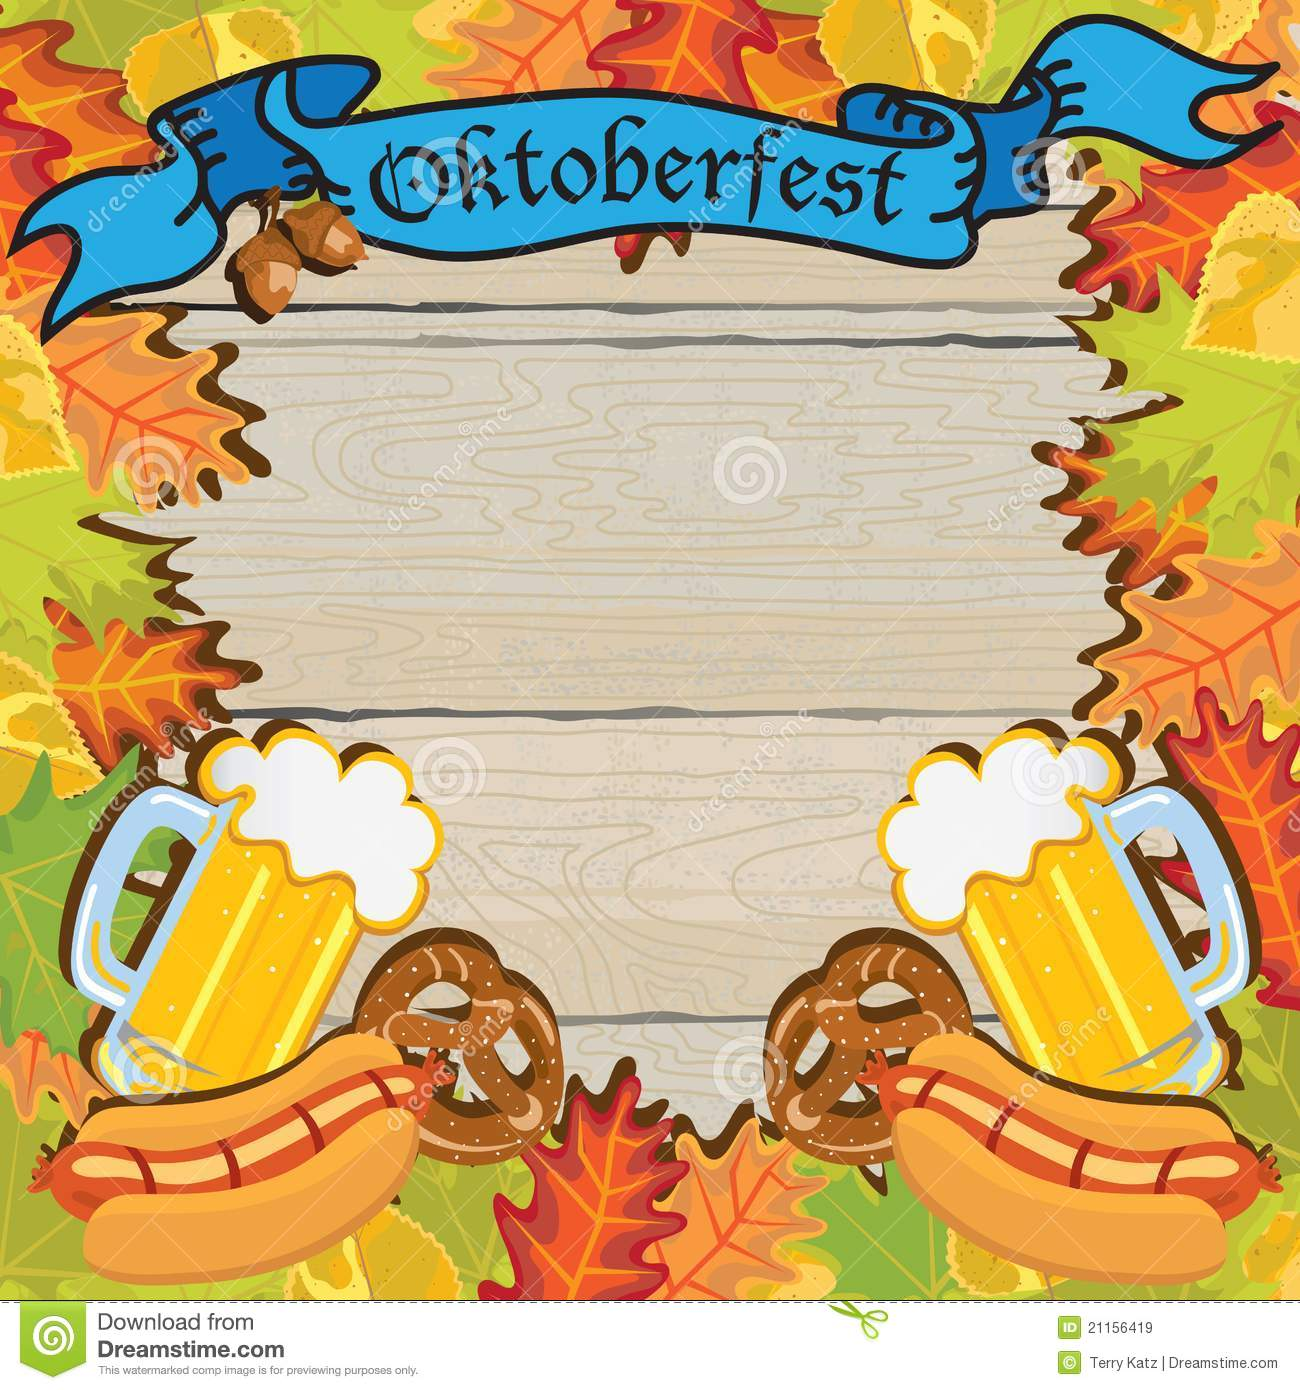 Oktoberfest Invitation Template | Oktoberfest Party Frame Invitation Poster Editorial Stock Image